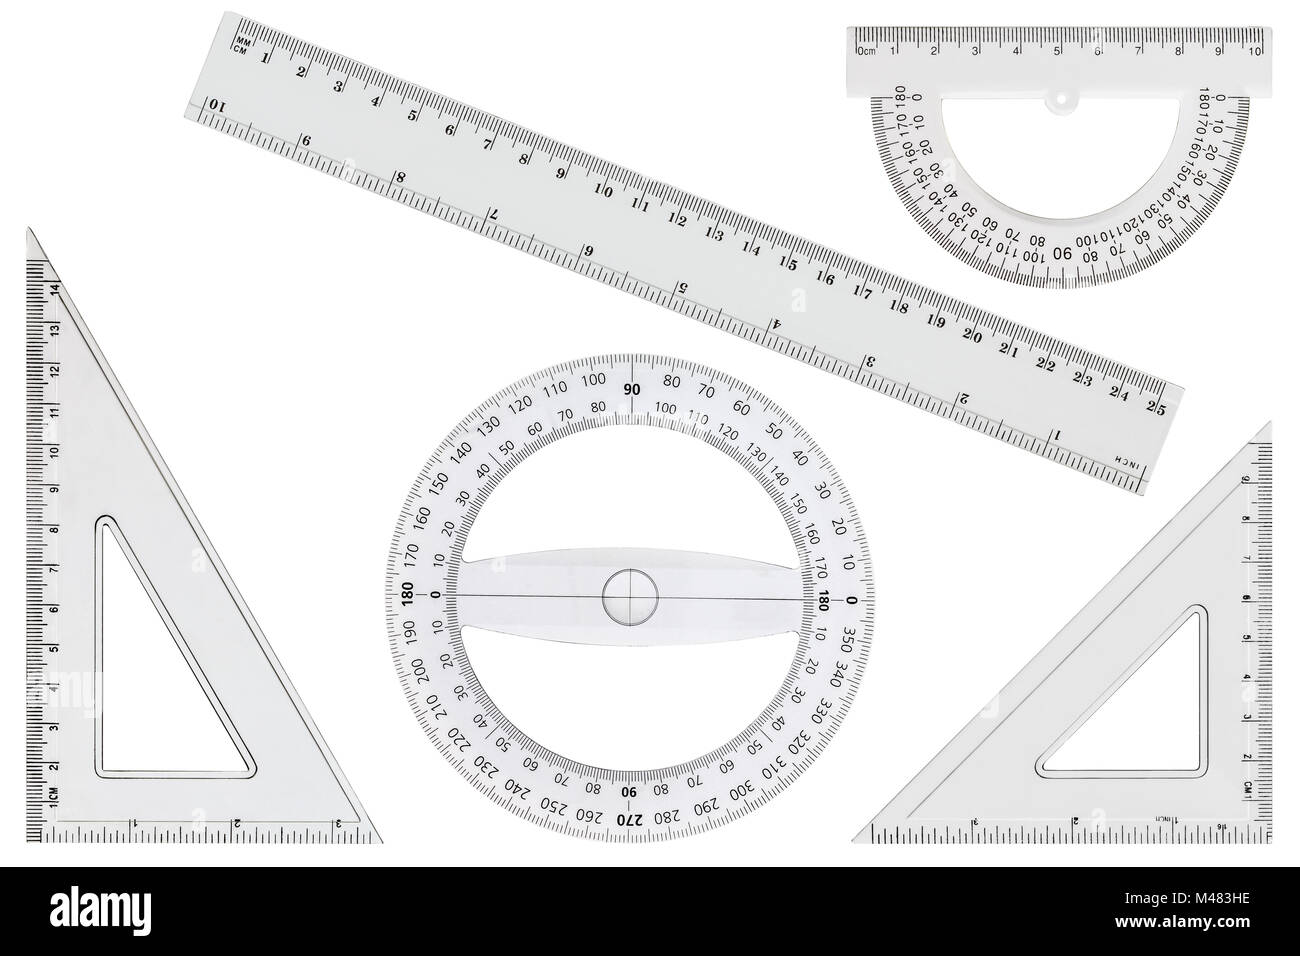 Set of white transparent rulers, isolated on white background - Stock Image